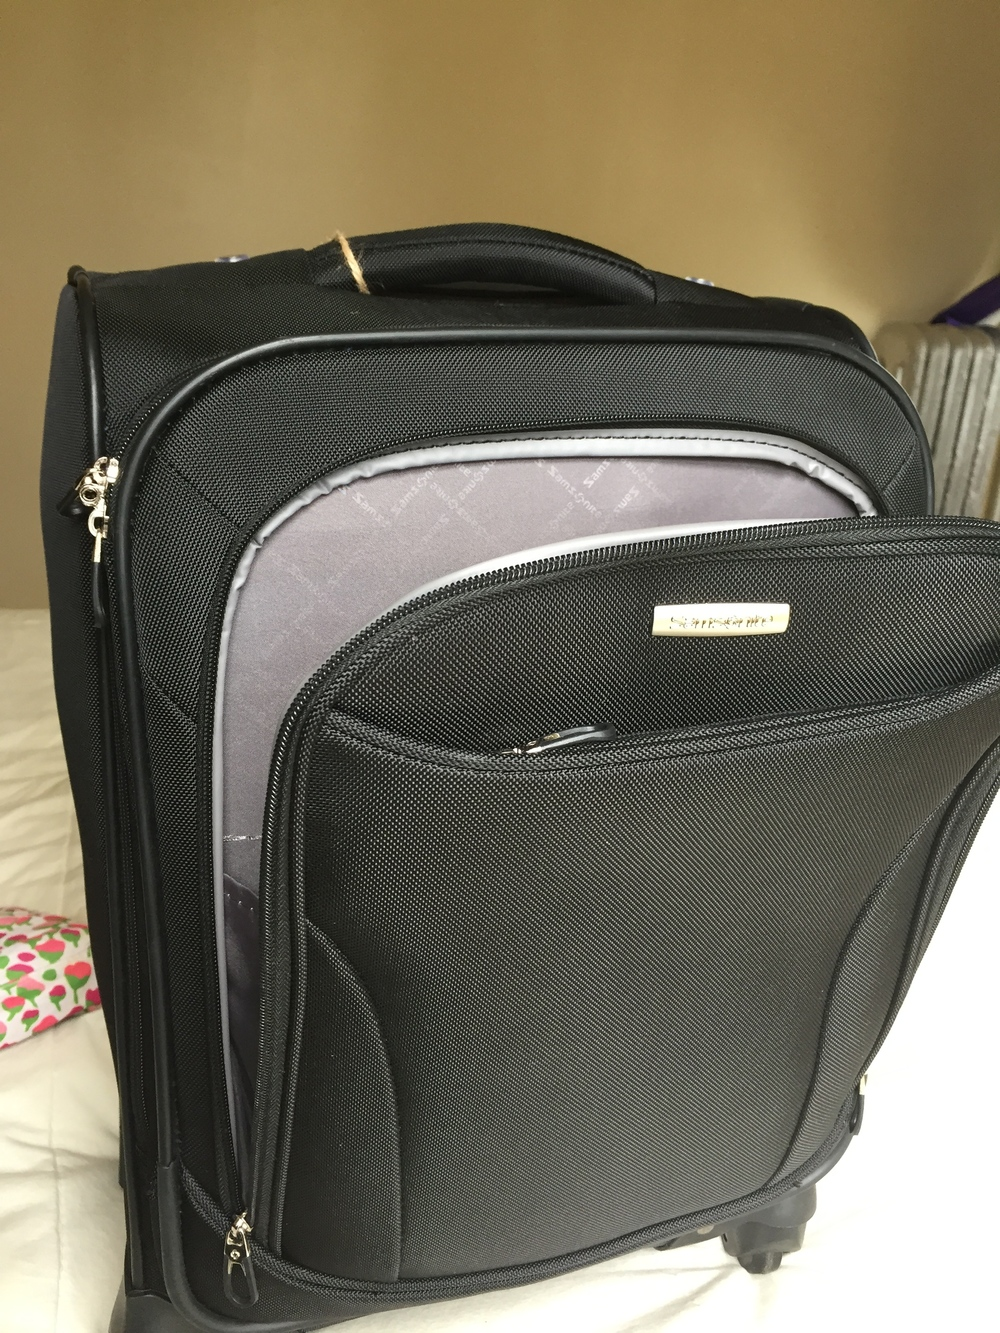 Packing A Carry On Suitcase